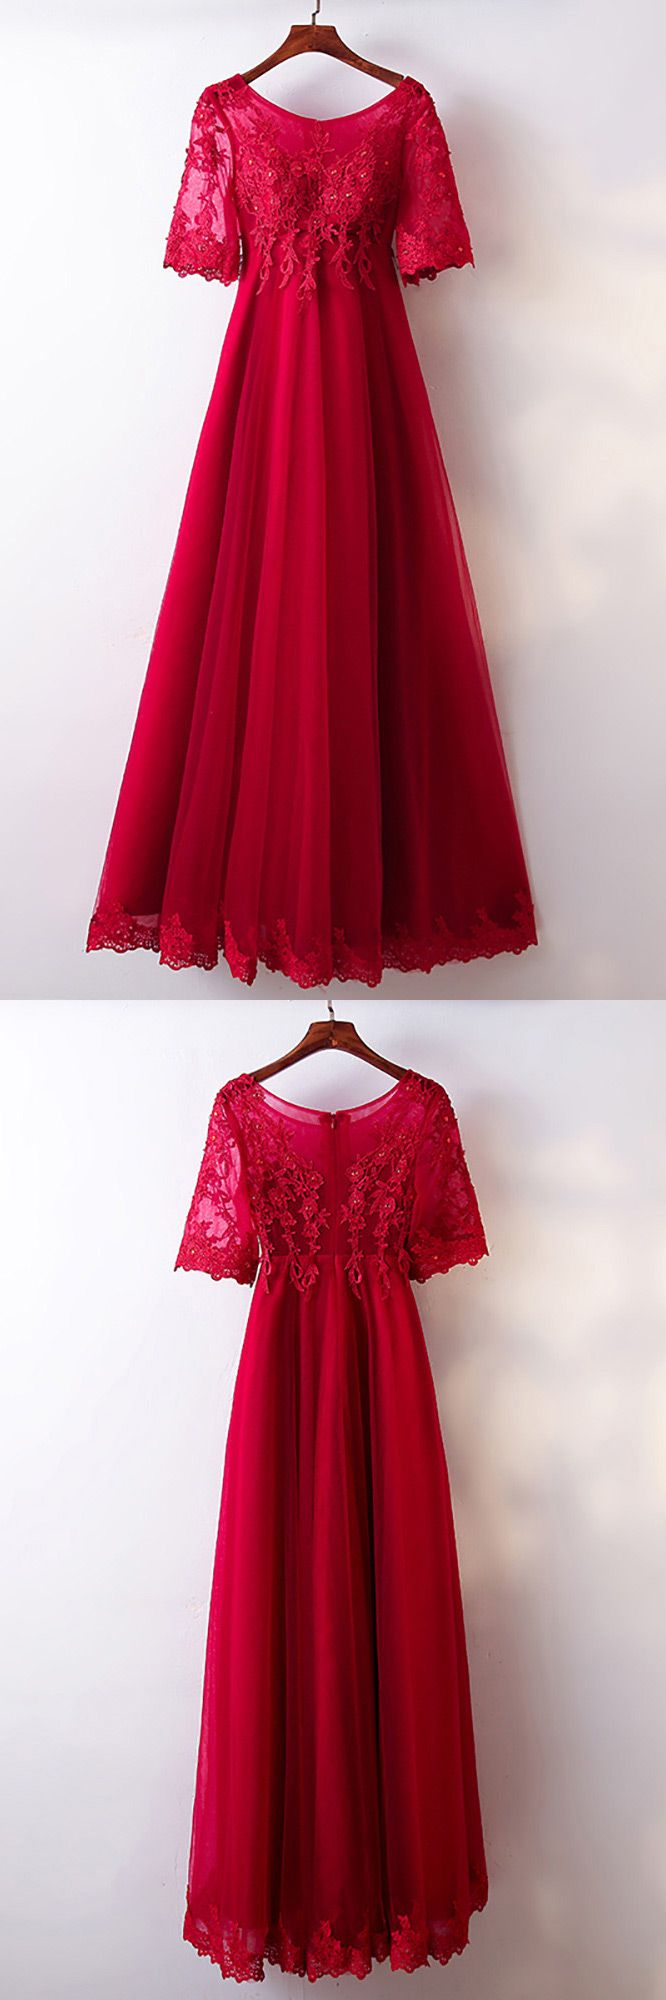 Only $118, A Line Burgundy Lace Tulle Formal Party Dress With Short Sleeves #MYX18009 at #SheProm. SheProm is an online store with thousands of dresses, range from Formal,Party,Red,A Line Dresses,Long Dresses,Customizable Dresses and so on. Not only selling formal dresses, more and more trendy dress styles will be updated daily to our store. With low price and high quality guaranteed, you will definitely like shopping from us.